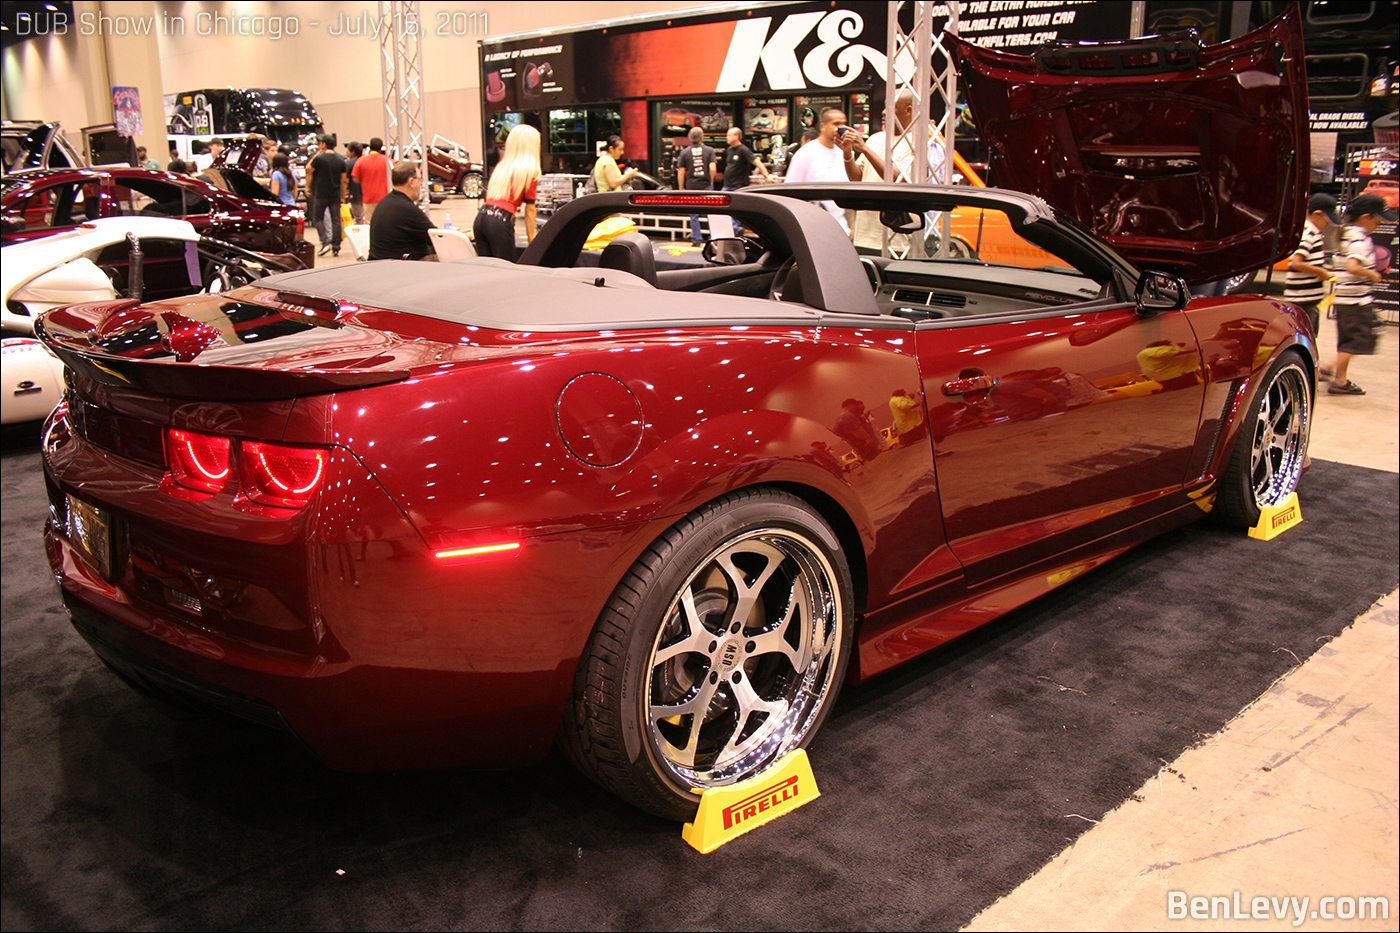 Tricked out Chevrolet Camaro Convertible - BenLevy.com